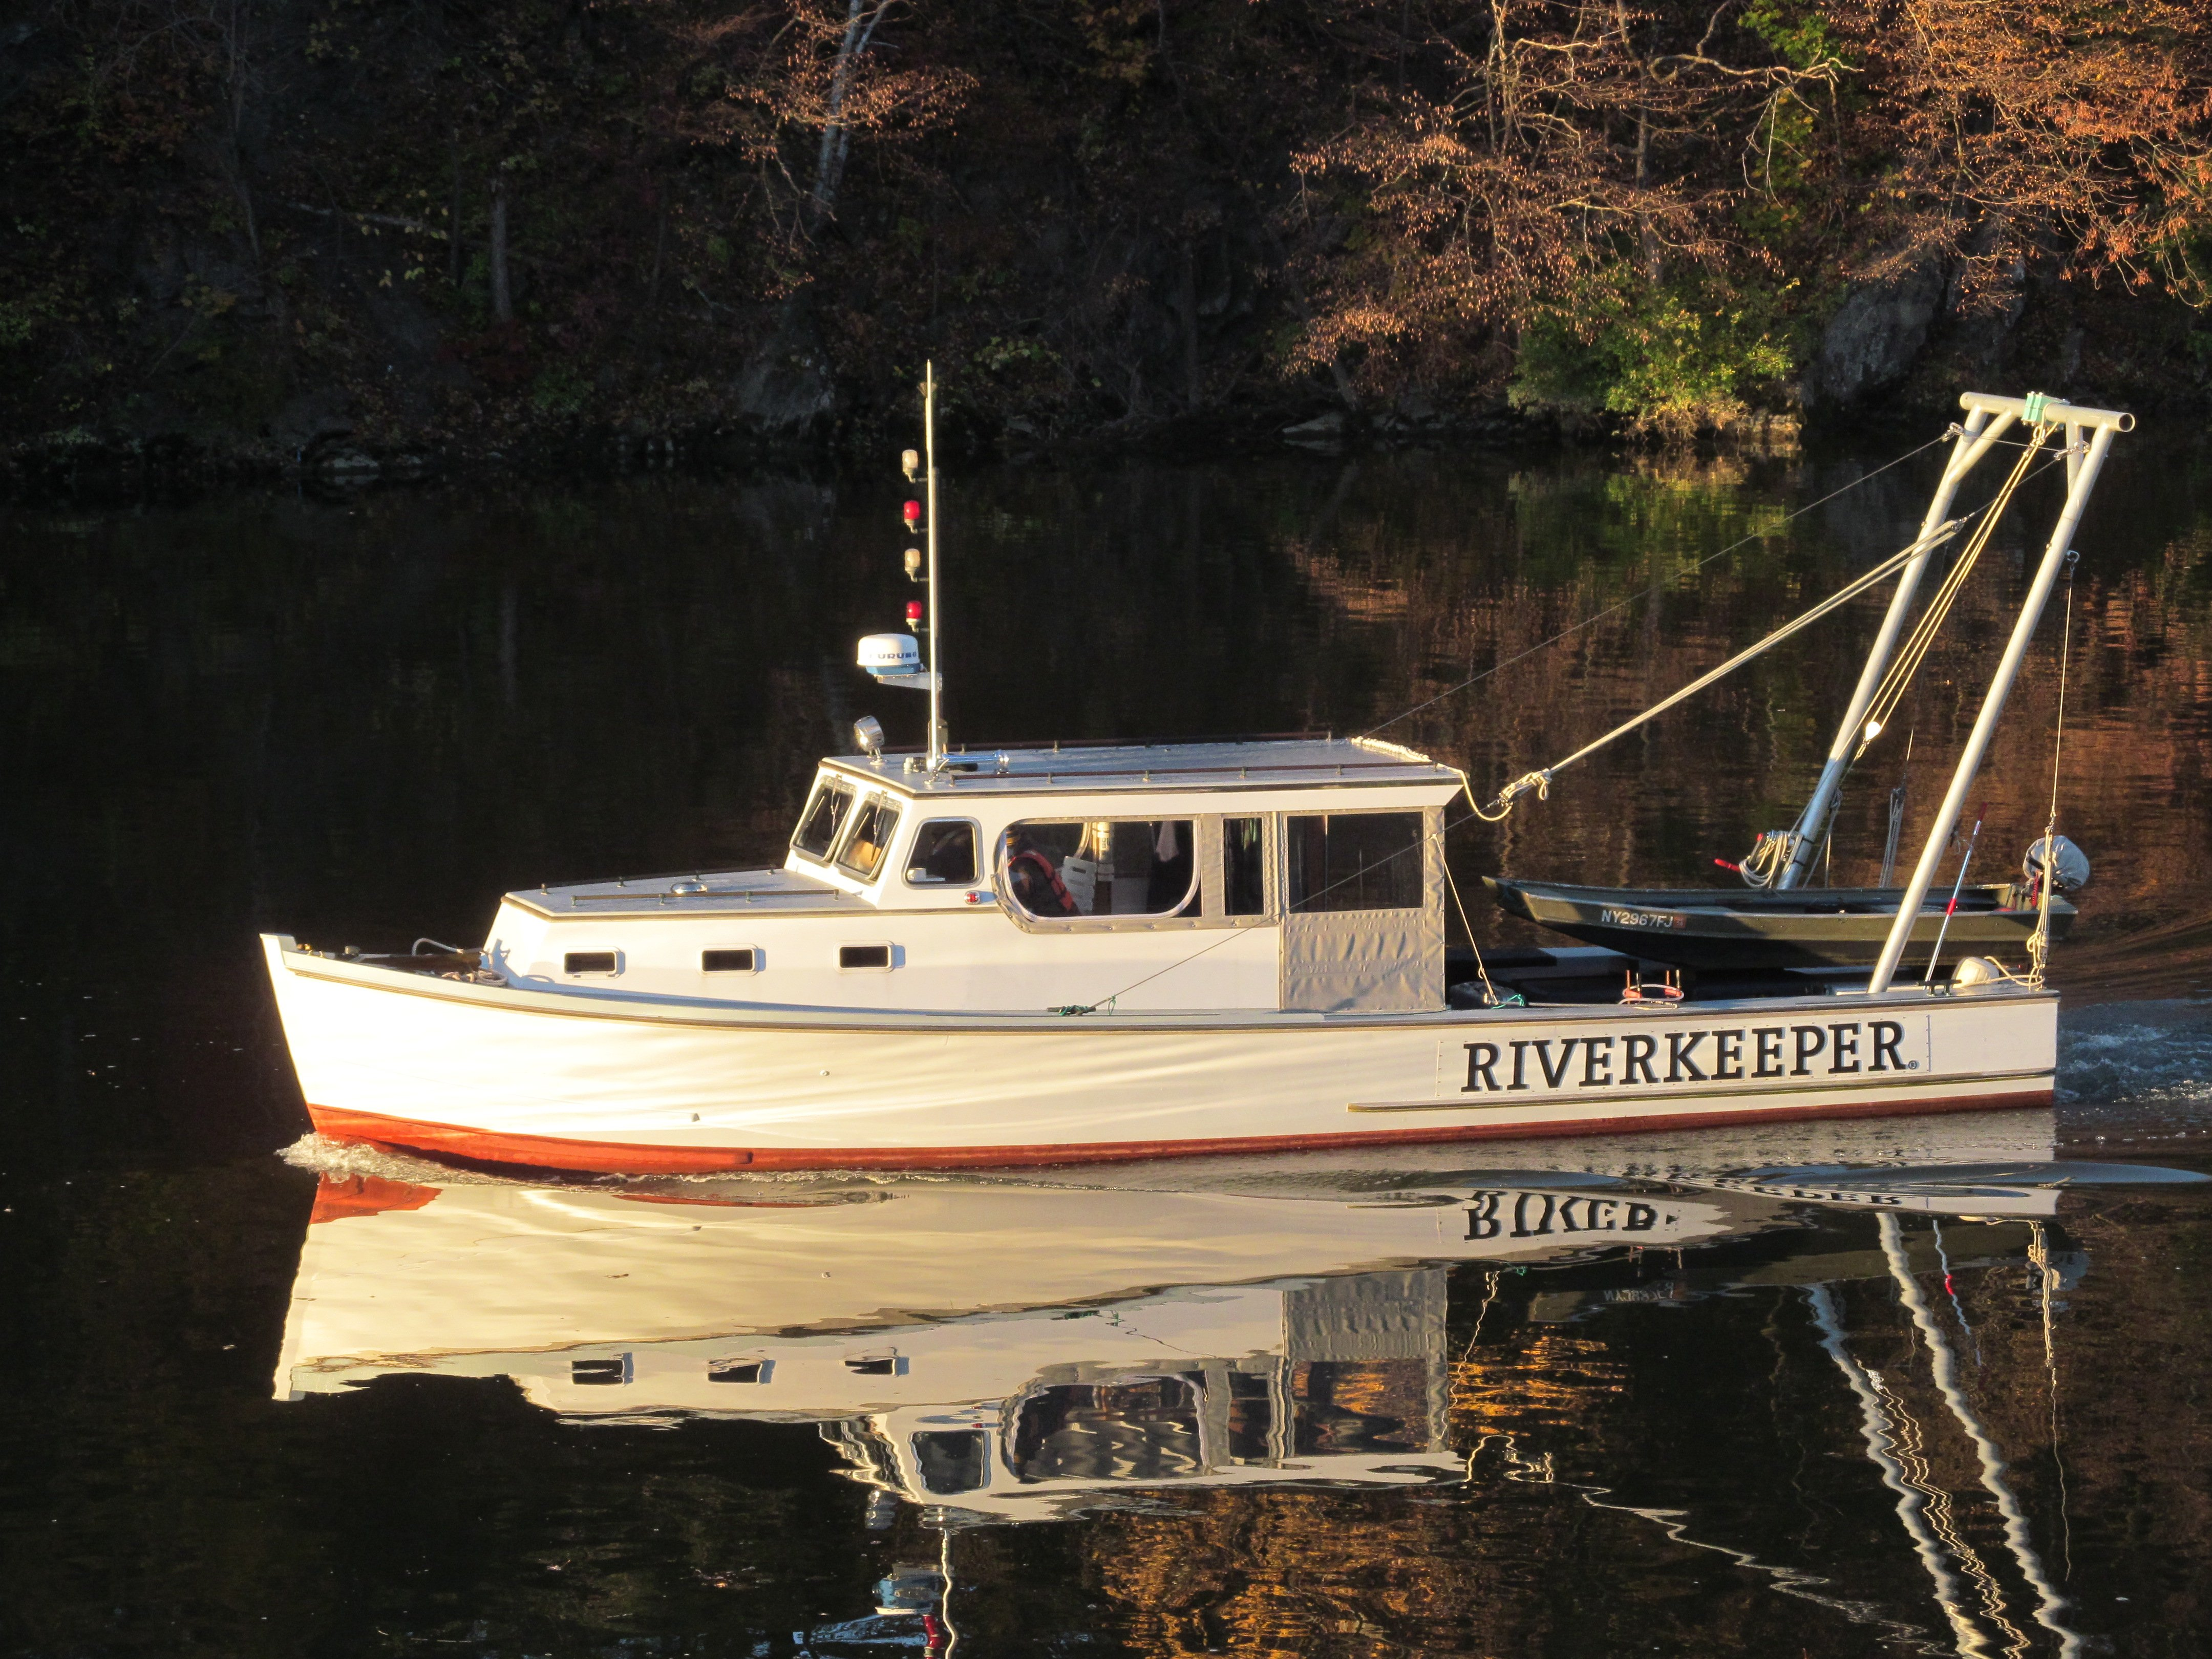 10 fast facts about the Riverkeeper patrol boat